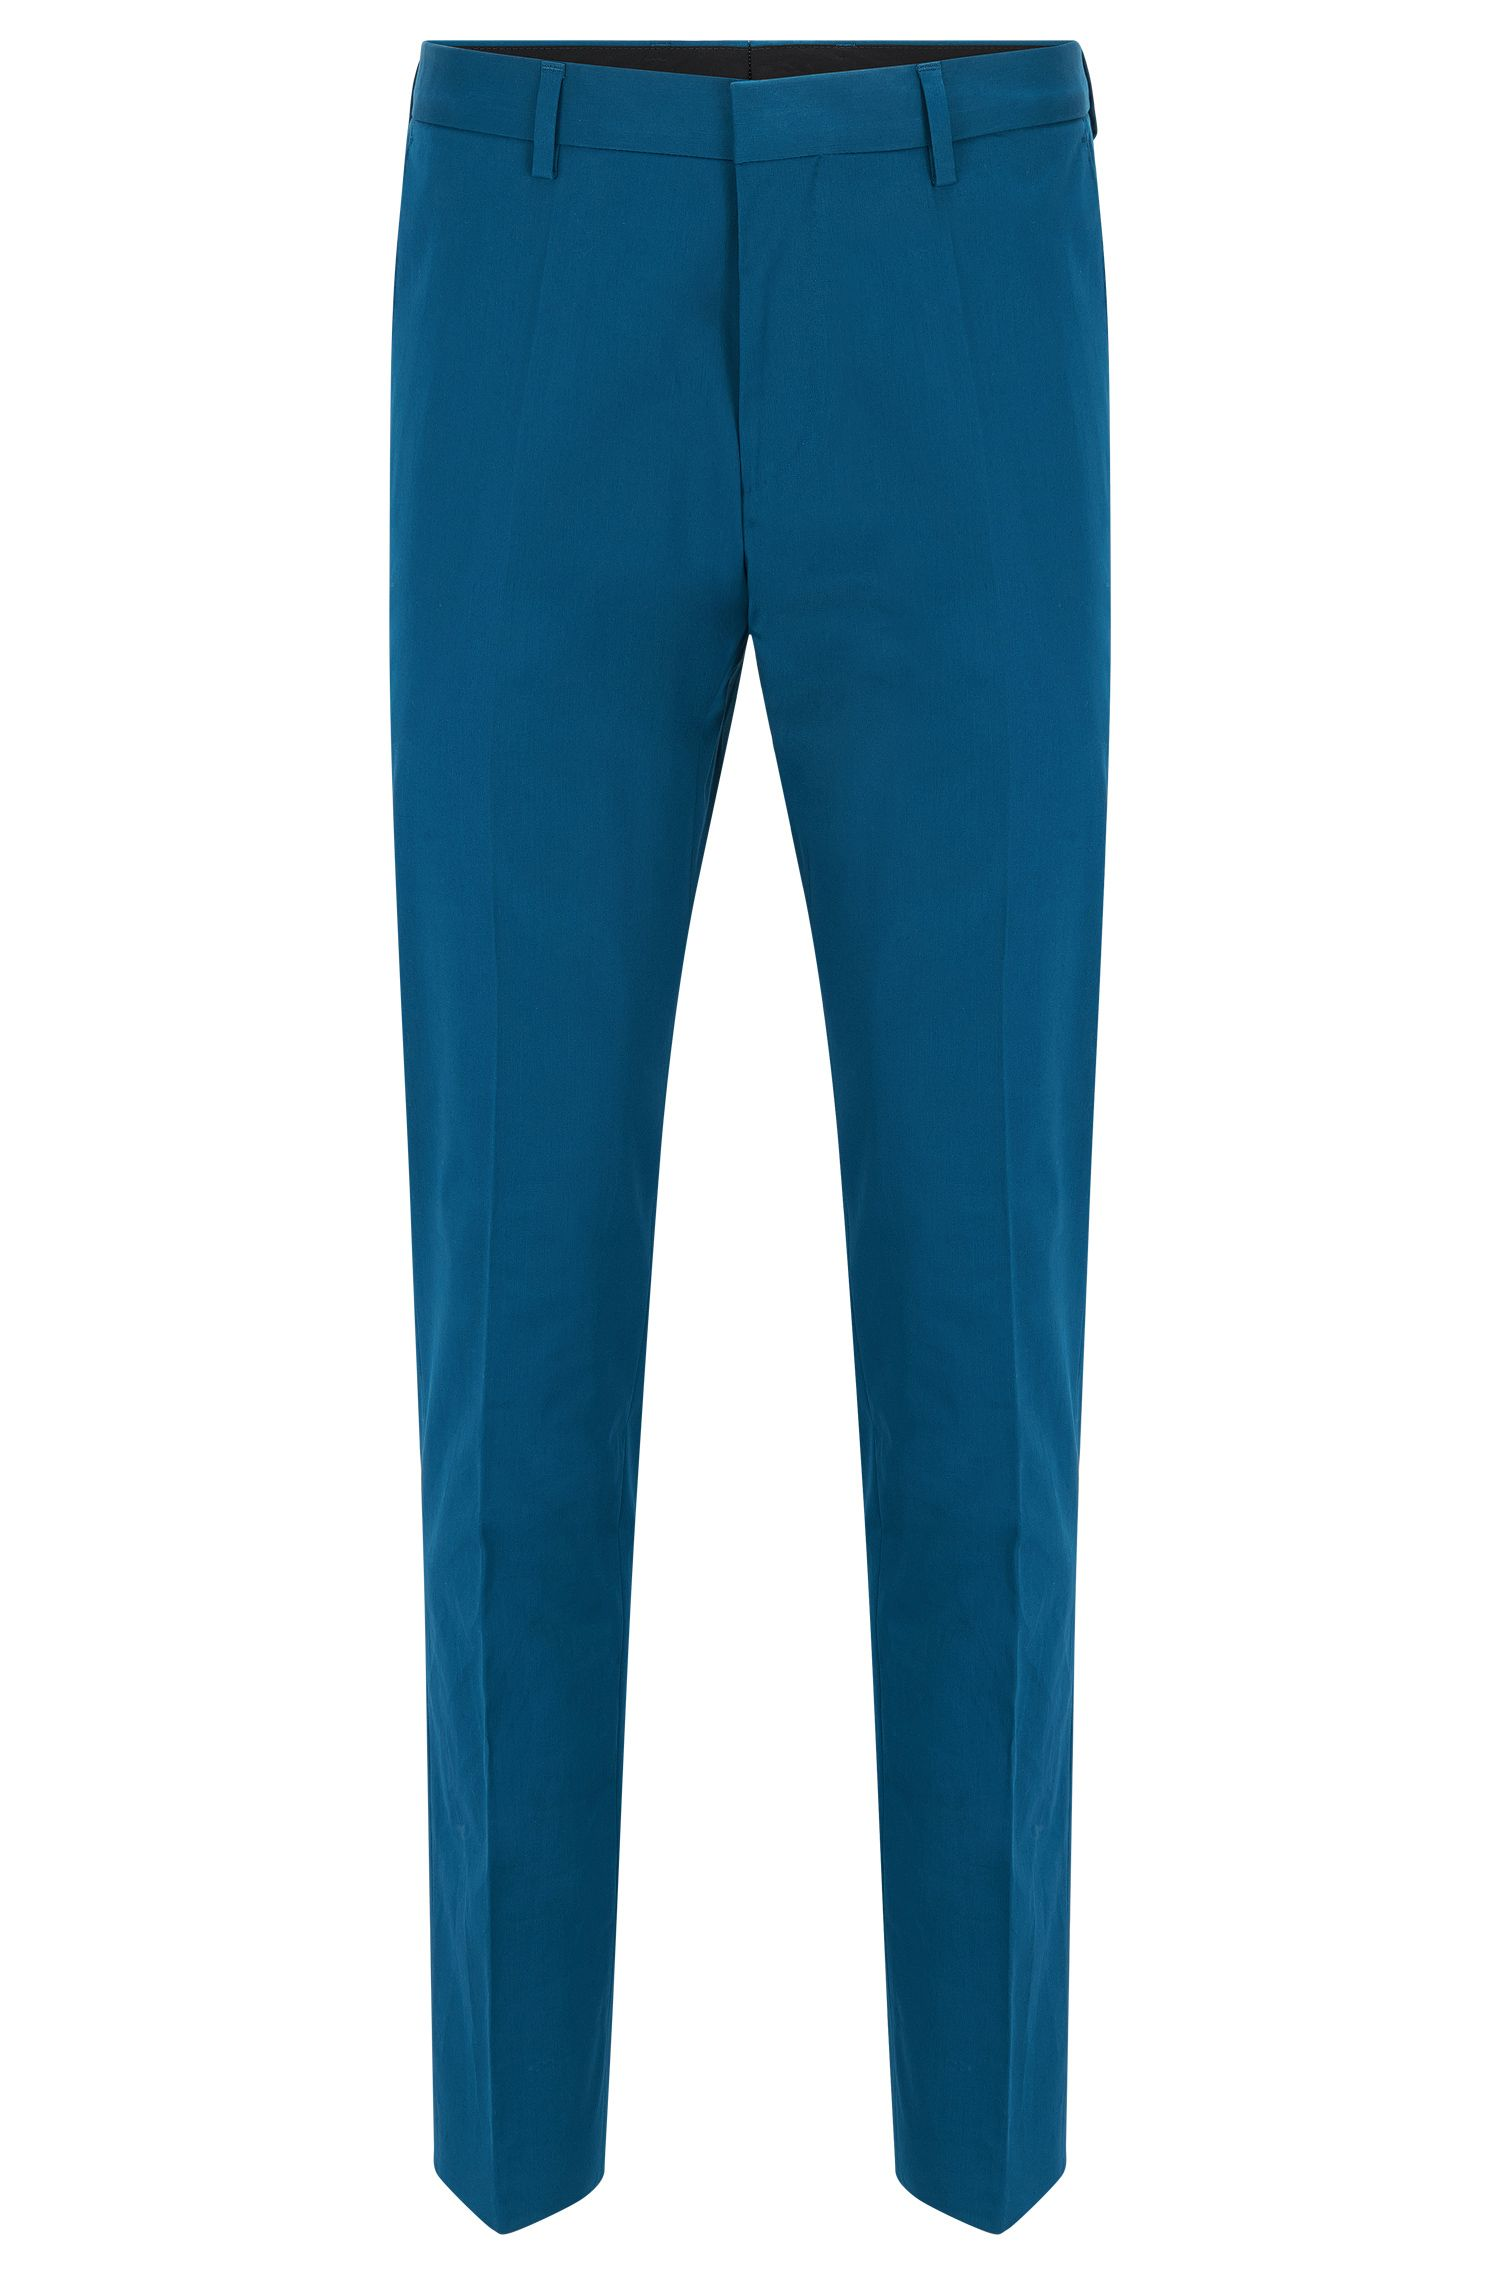 'Genesis' | Slim Fit, Stretch Cotton Dress Pants